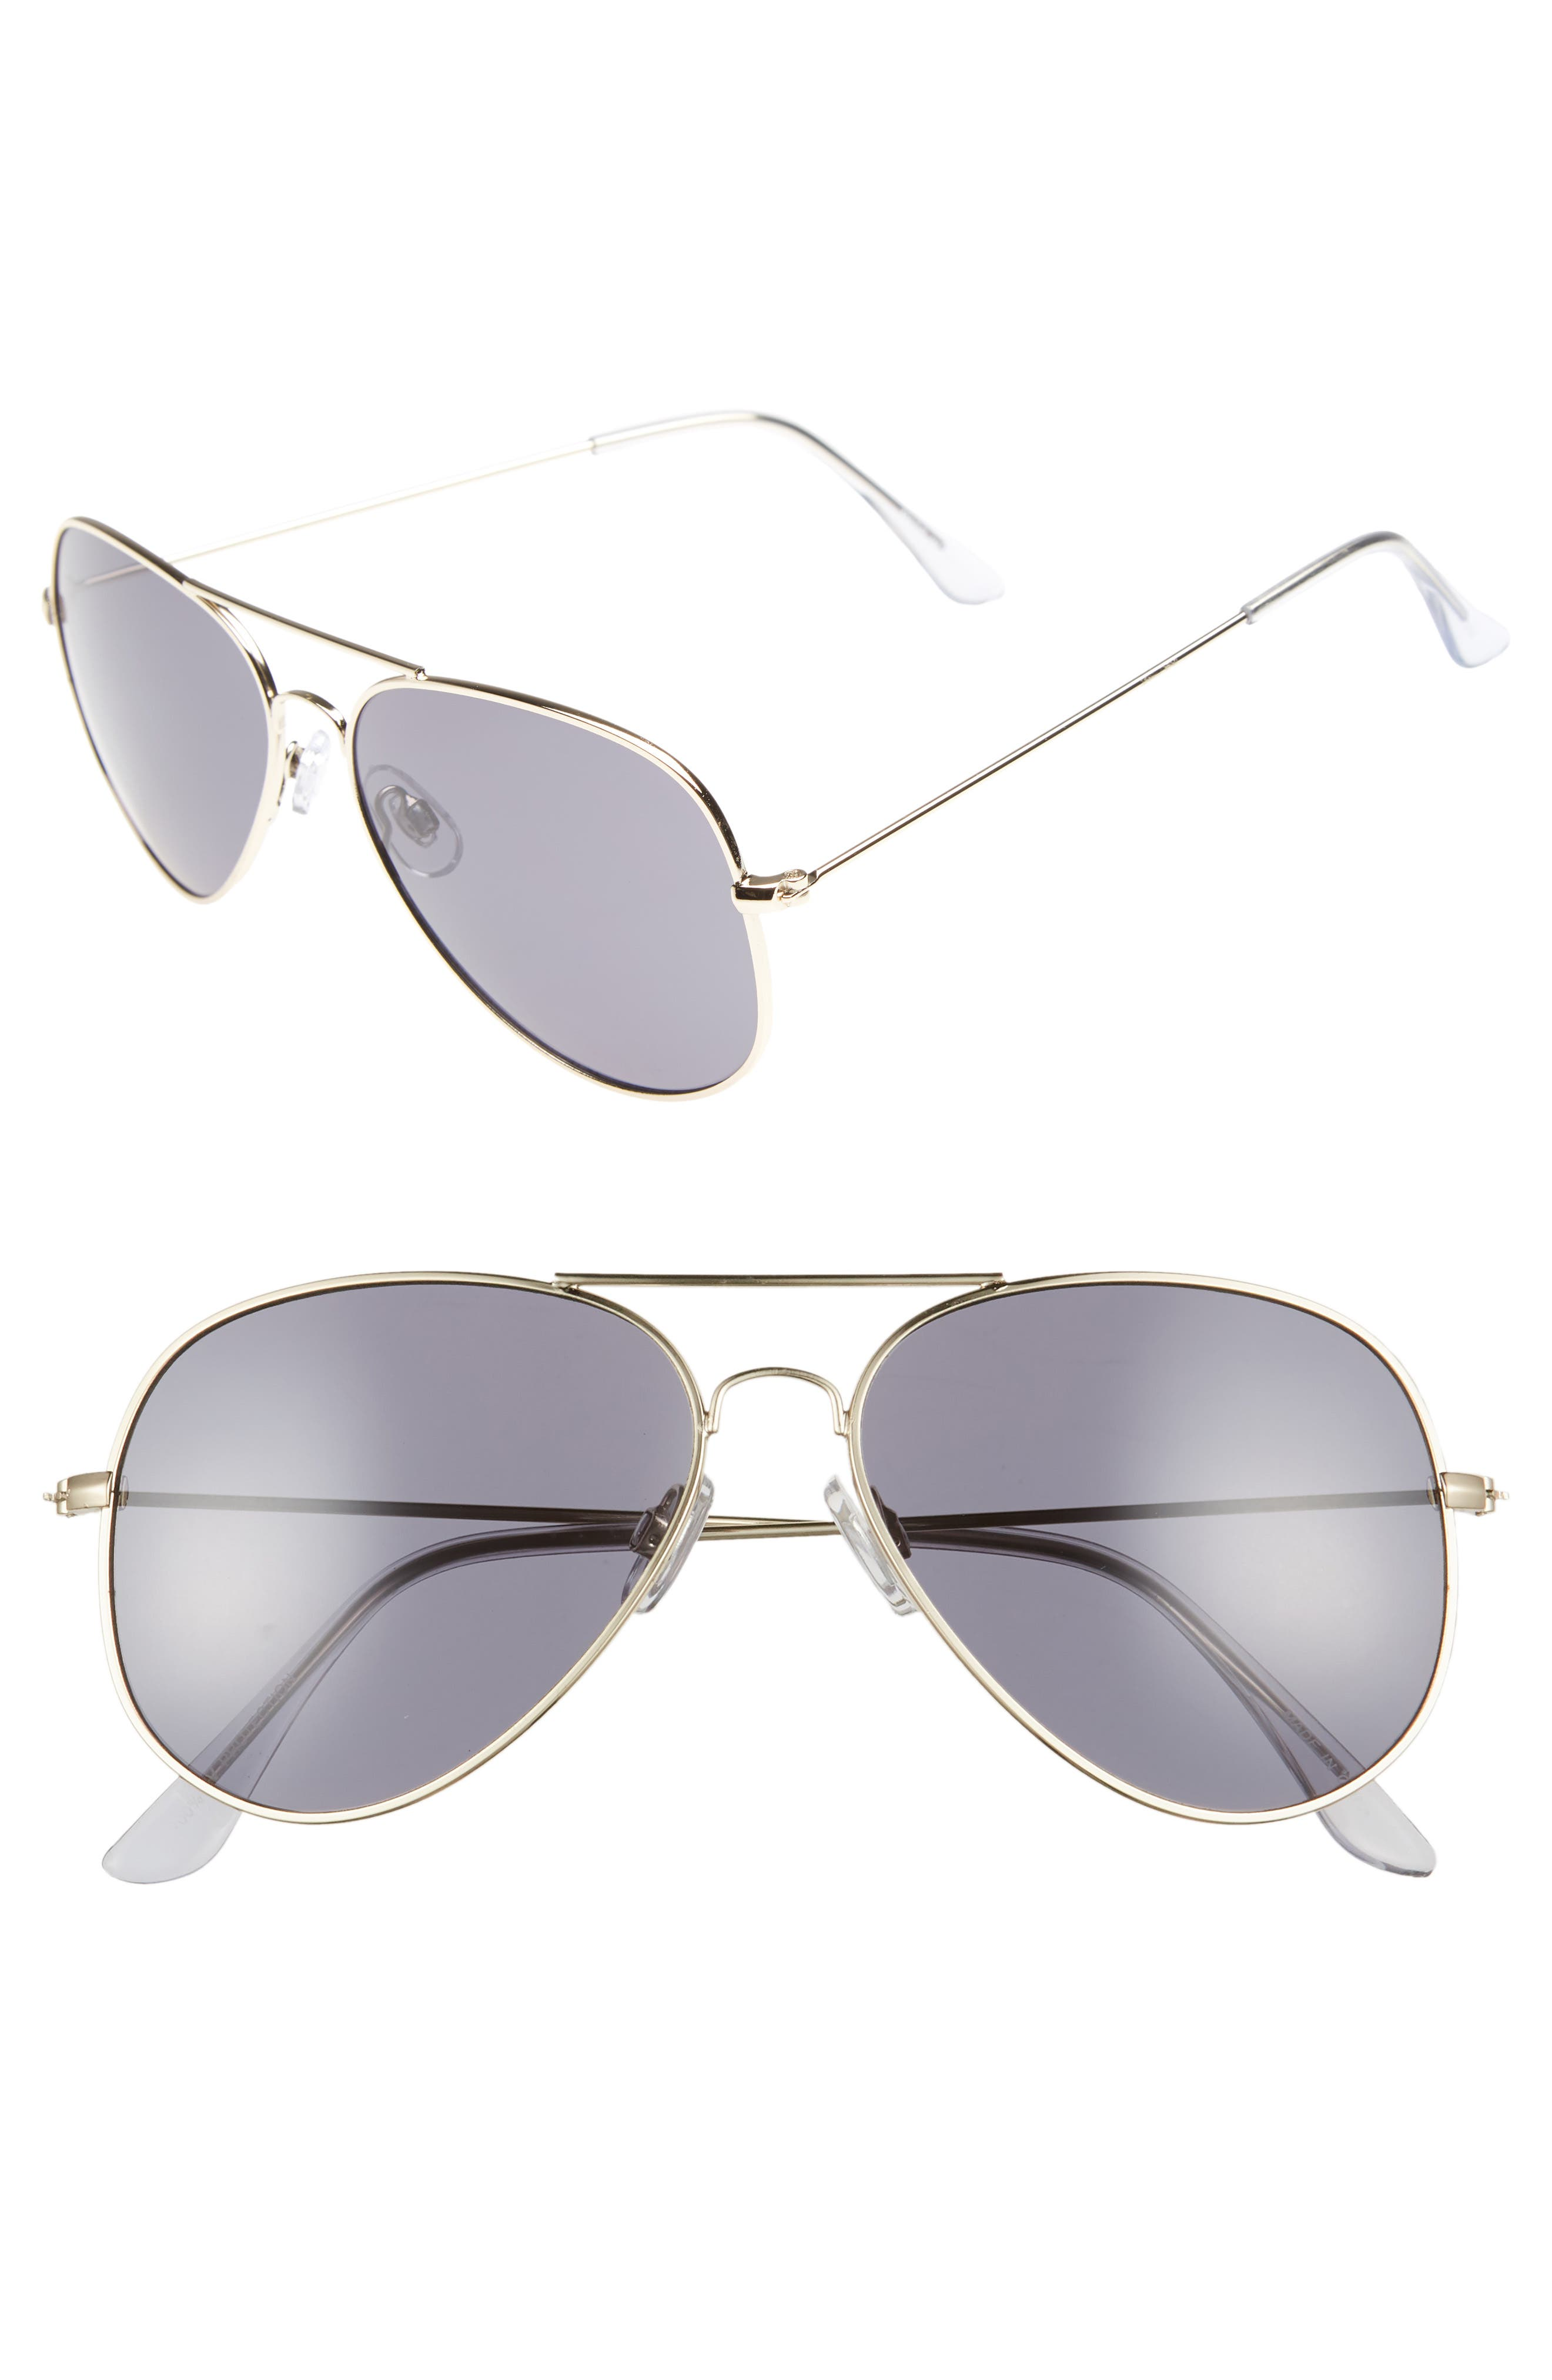 Mirrored Aviator 57mm Sunglasses,                             Main thumbnail 1, color,                             Gold/ Smoke